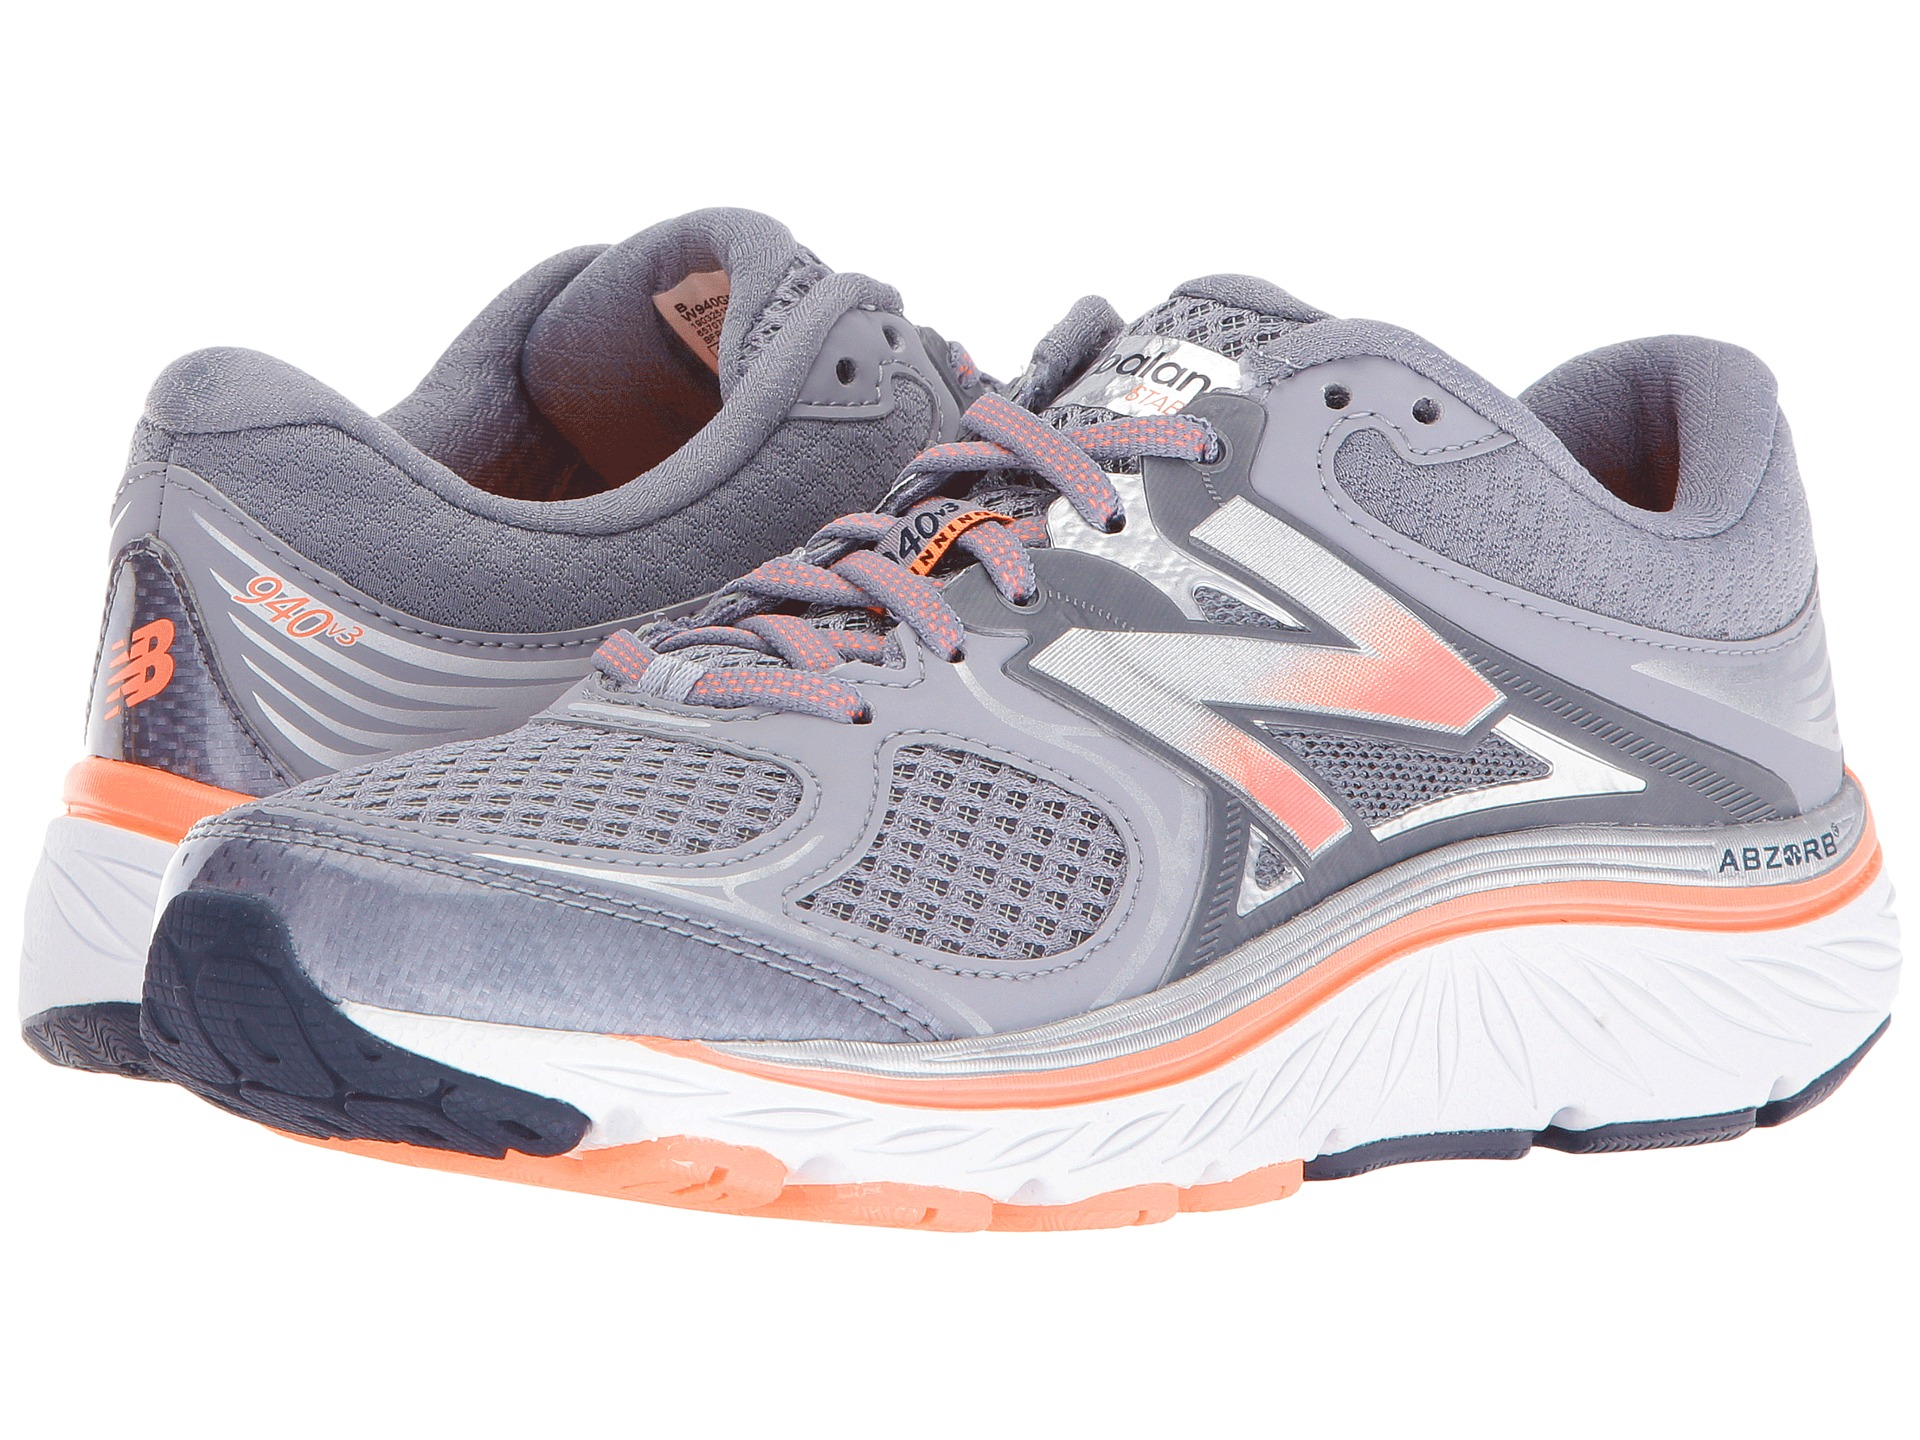 New Balance M Road Running Shoes